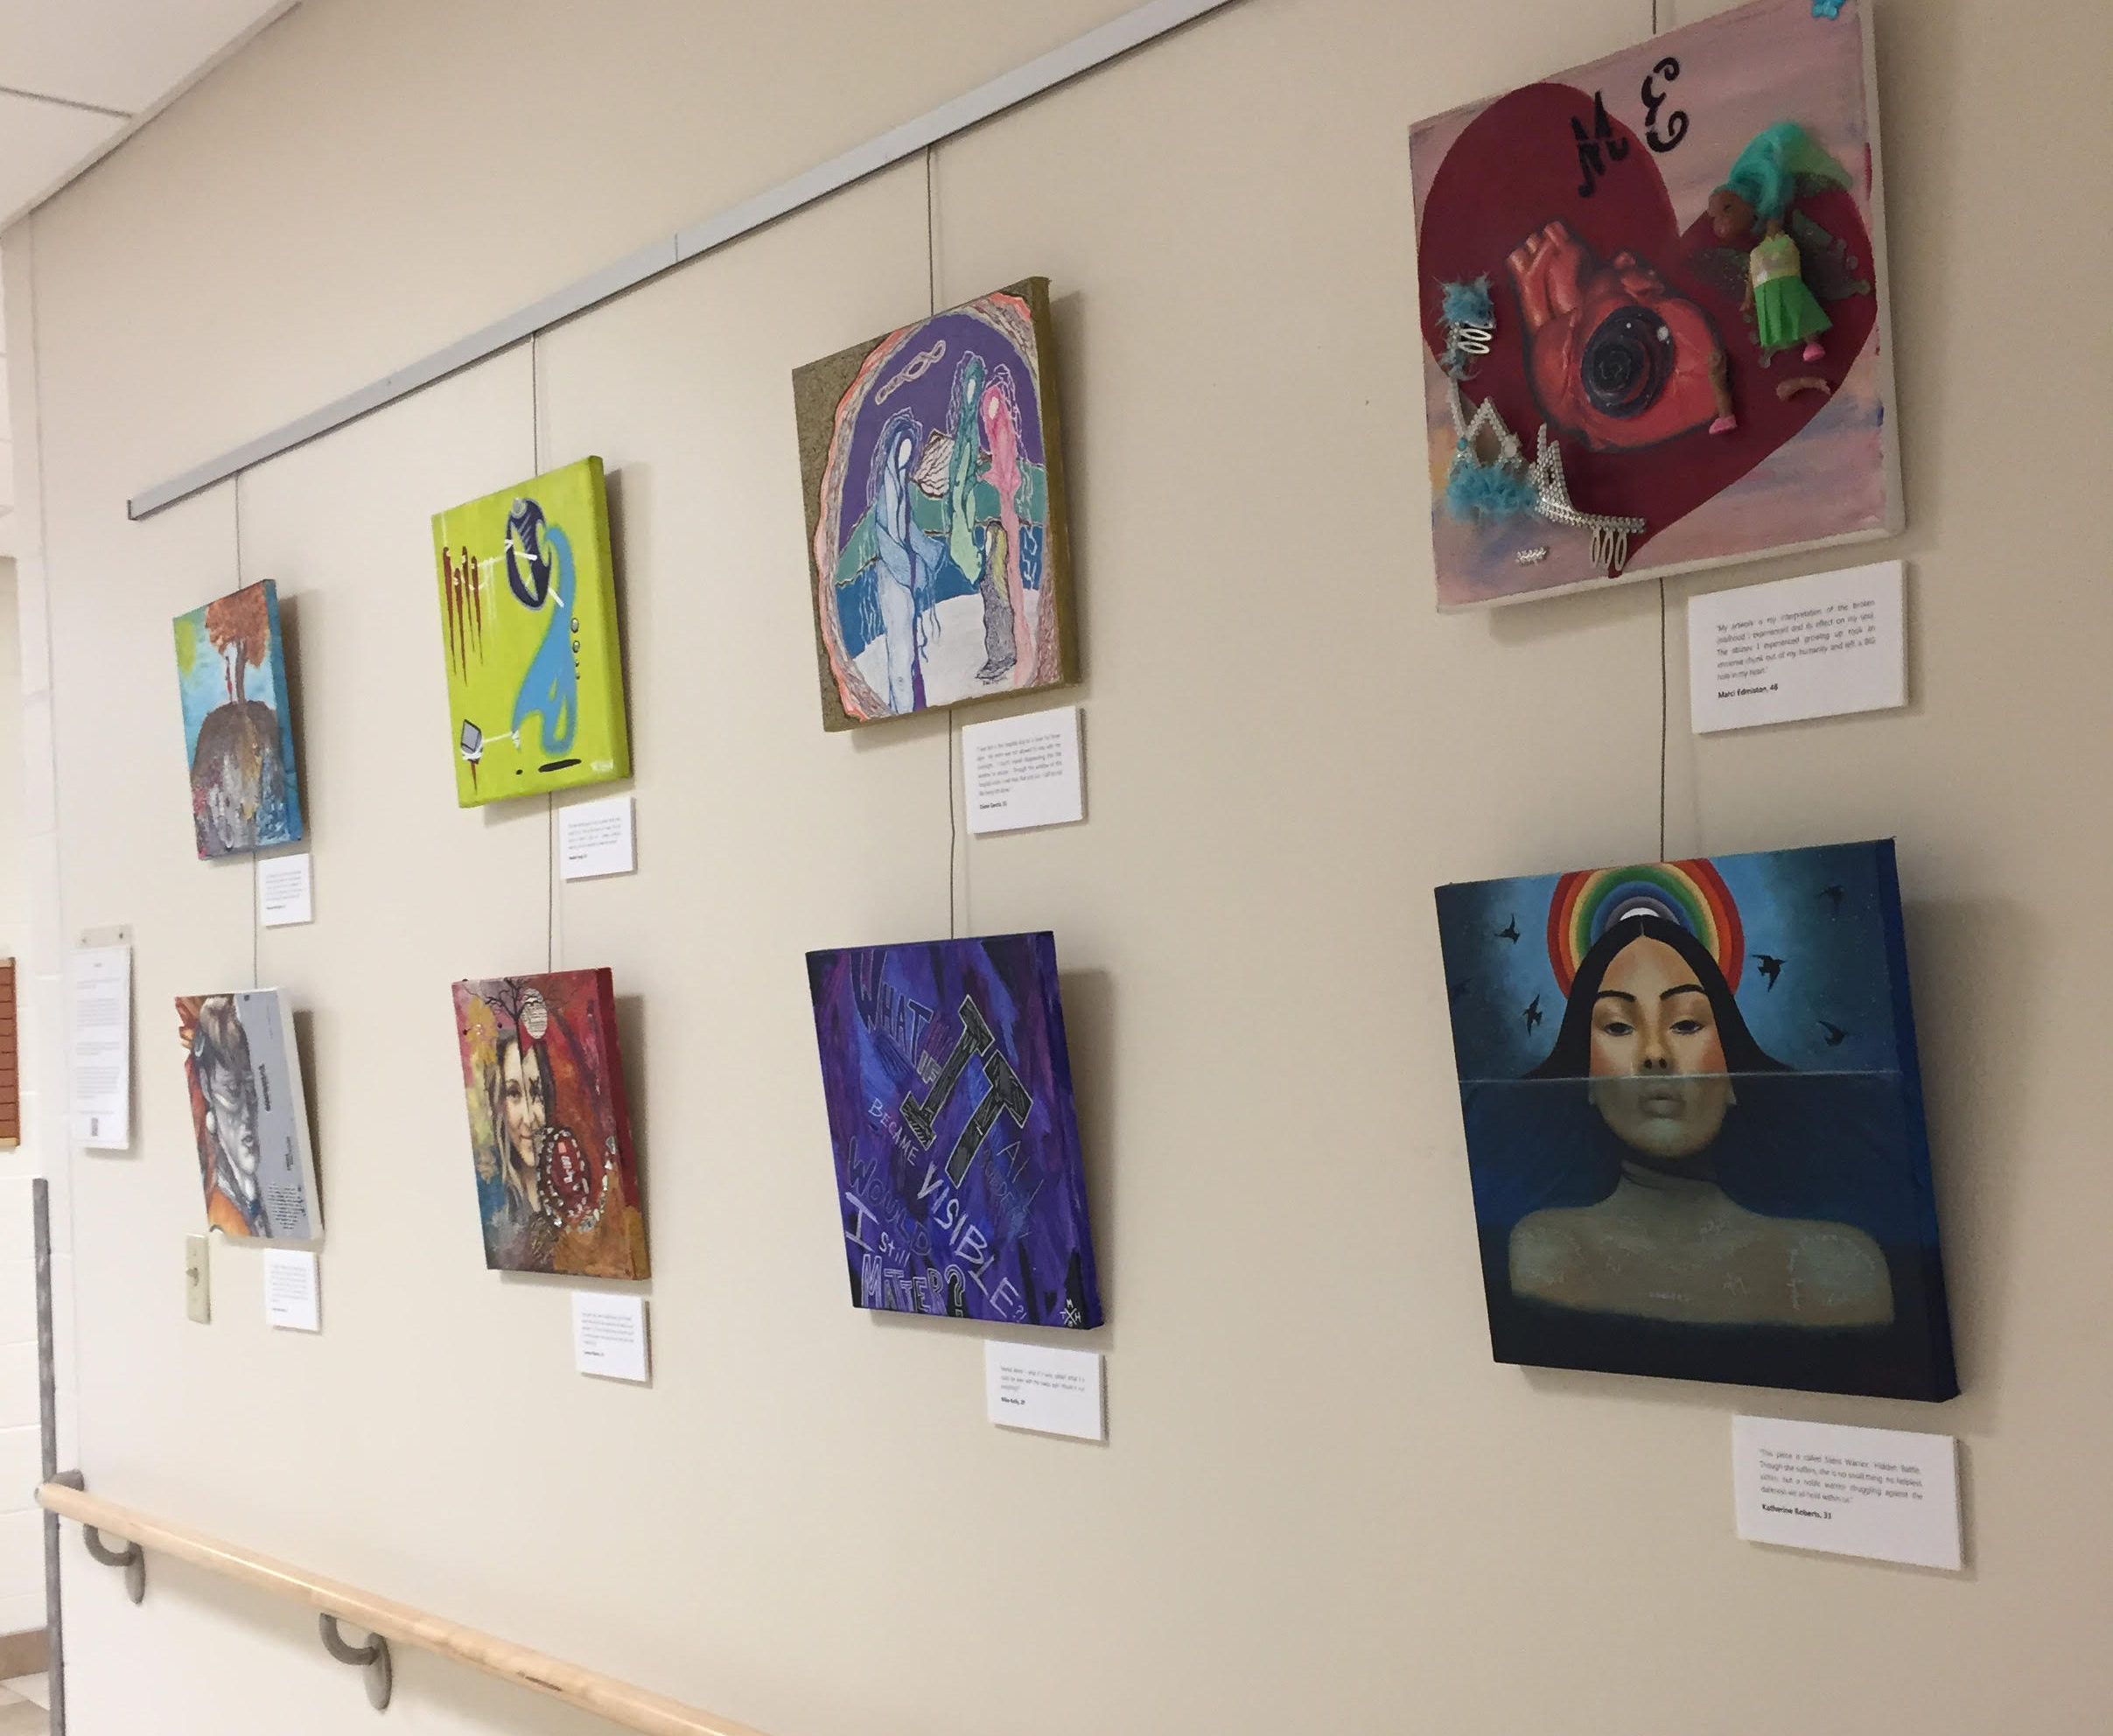 Caring Art Program marries medicine and art